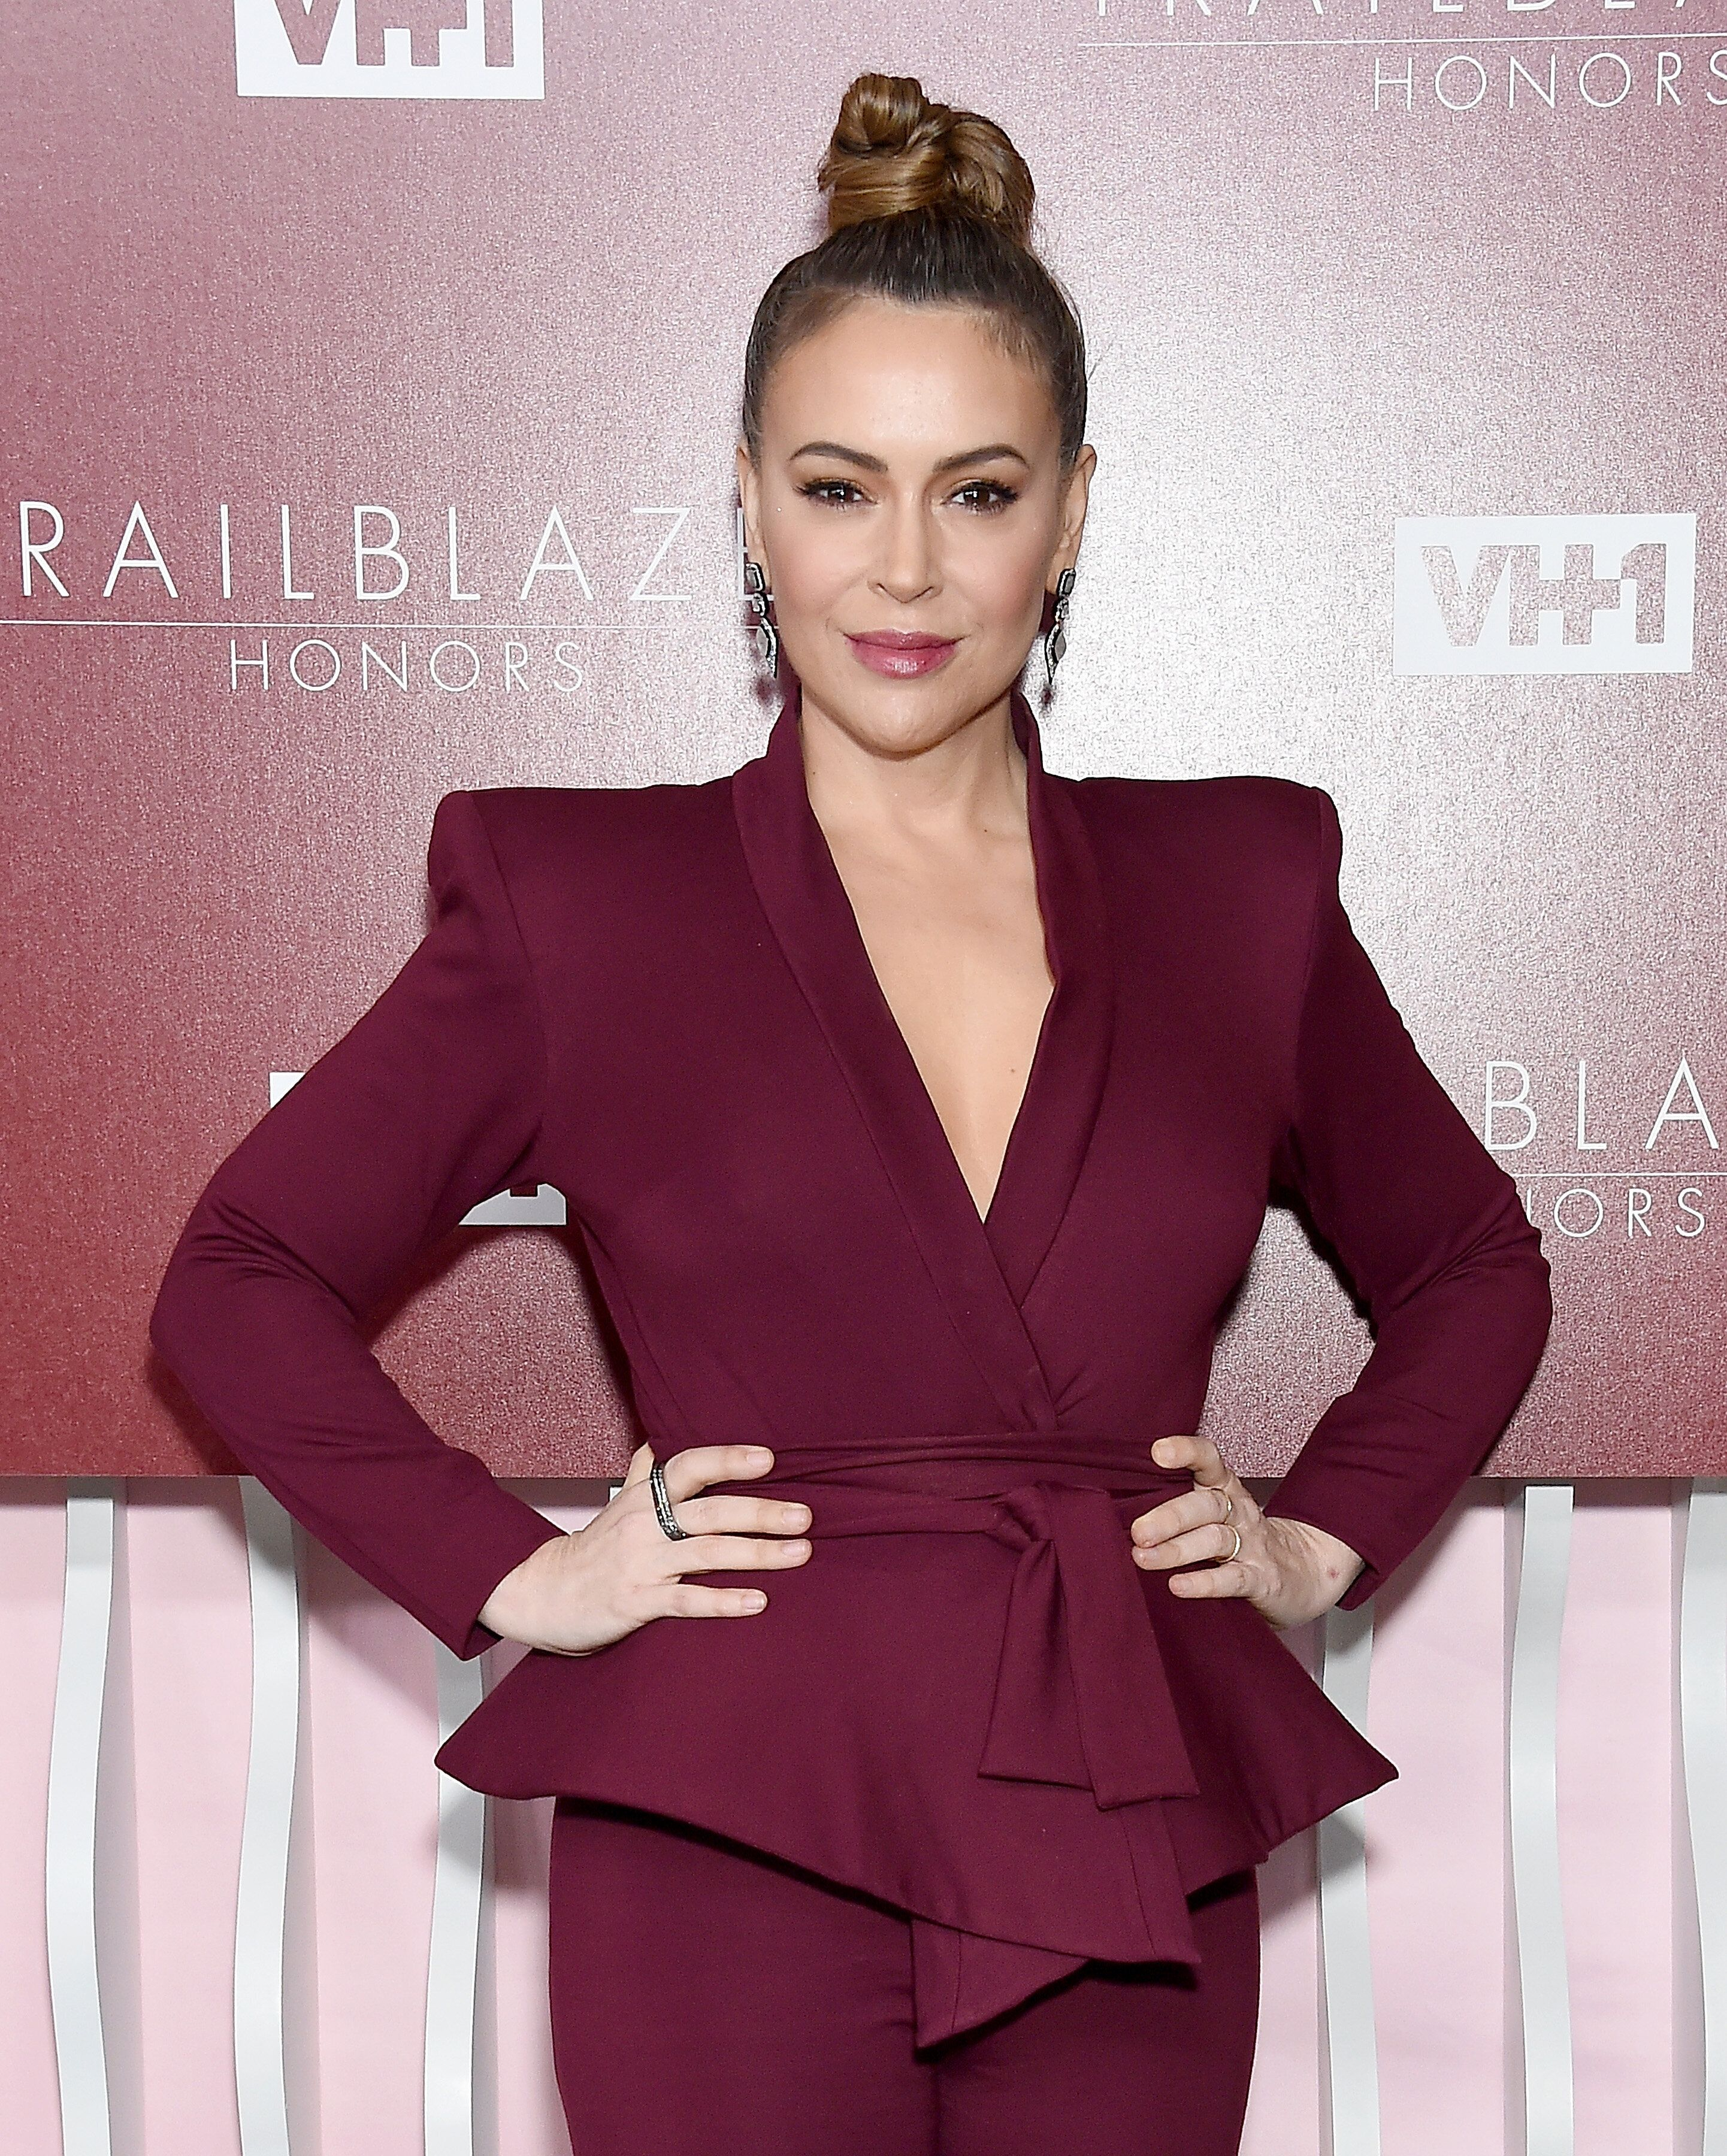 LOS ANGELES, CA - FEBRUARY 20:  Alyssa Milano arrives at VH1 Trailblazer Honors at The Wilshire Ebell Theatre on February 20, 2019 in Los Angeles, California.  (Photo by Gregg DeGuire/WireImage)